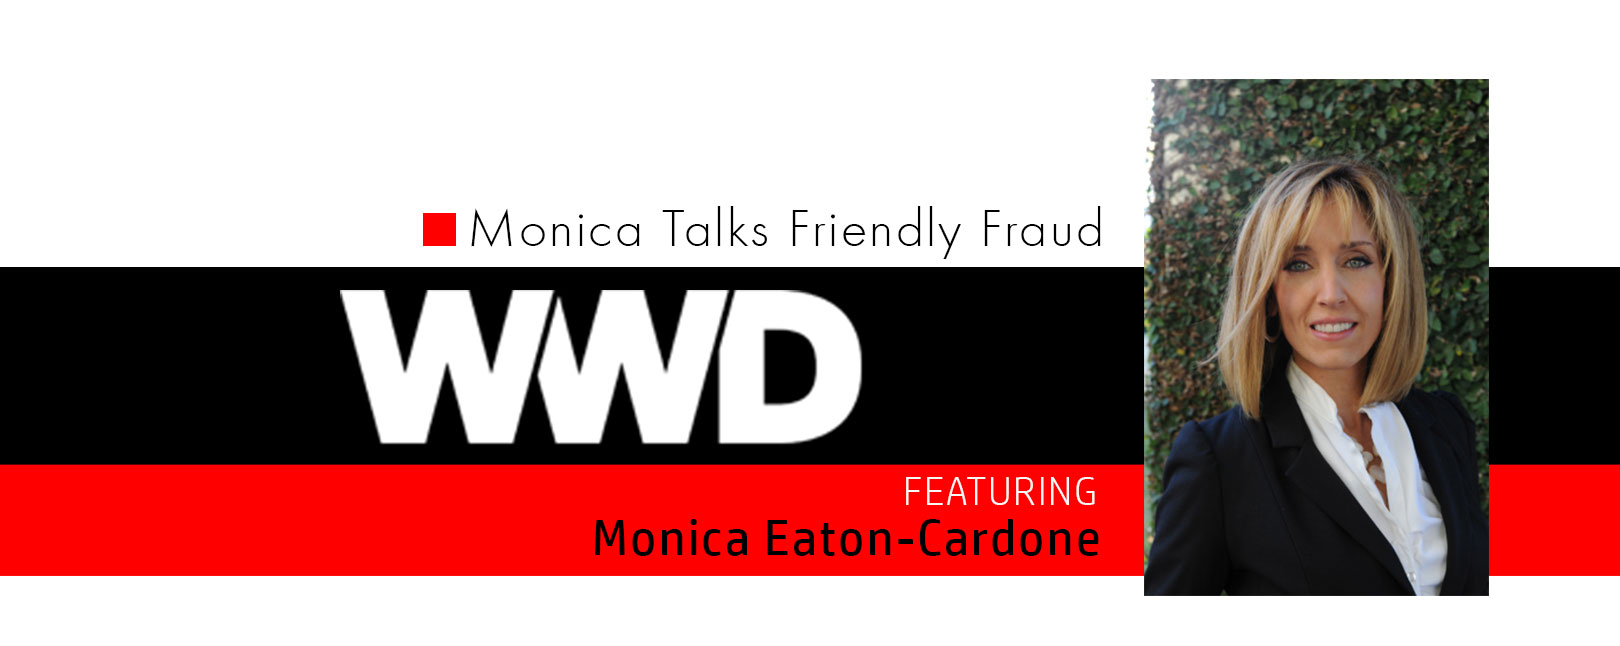 monica talks friendly fraud